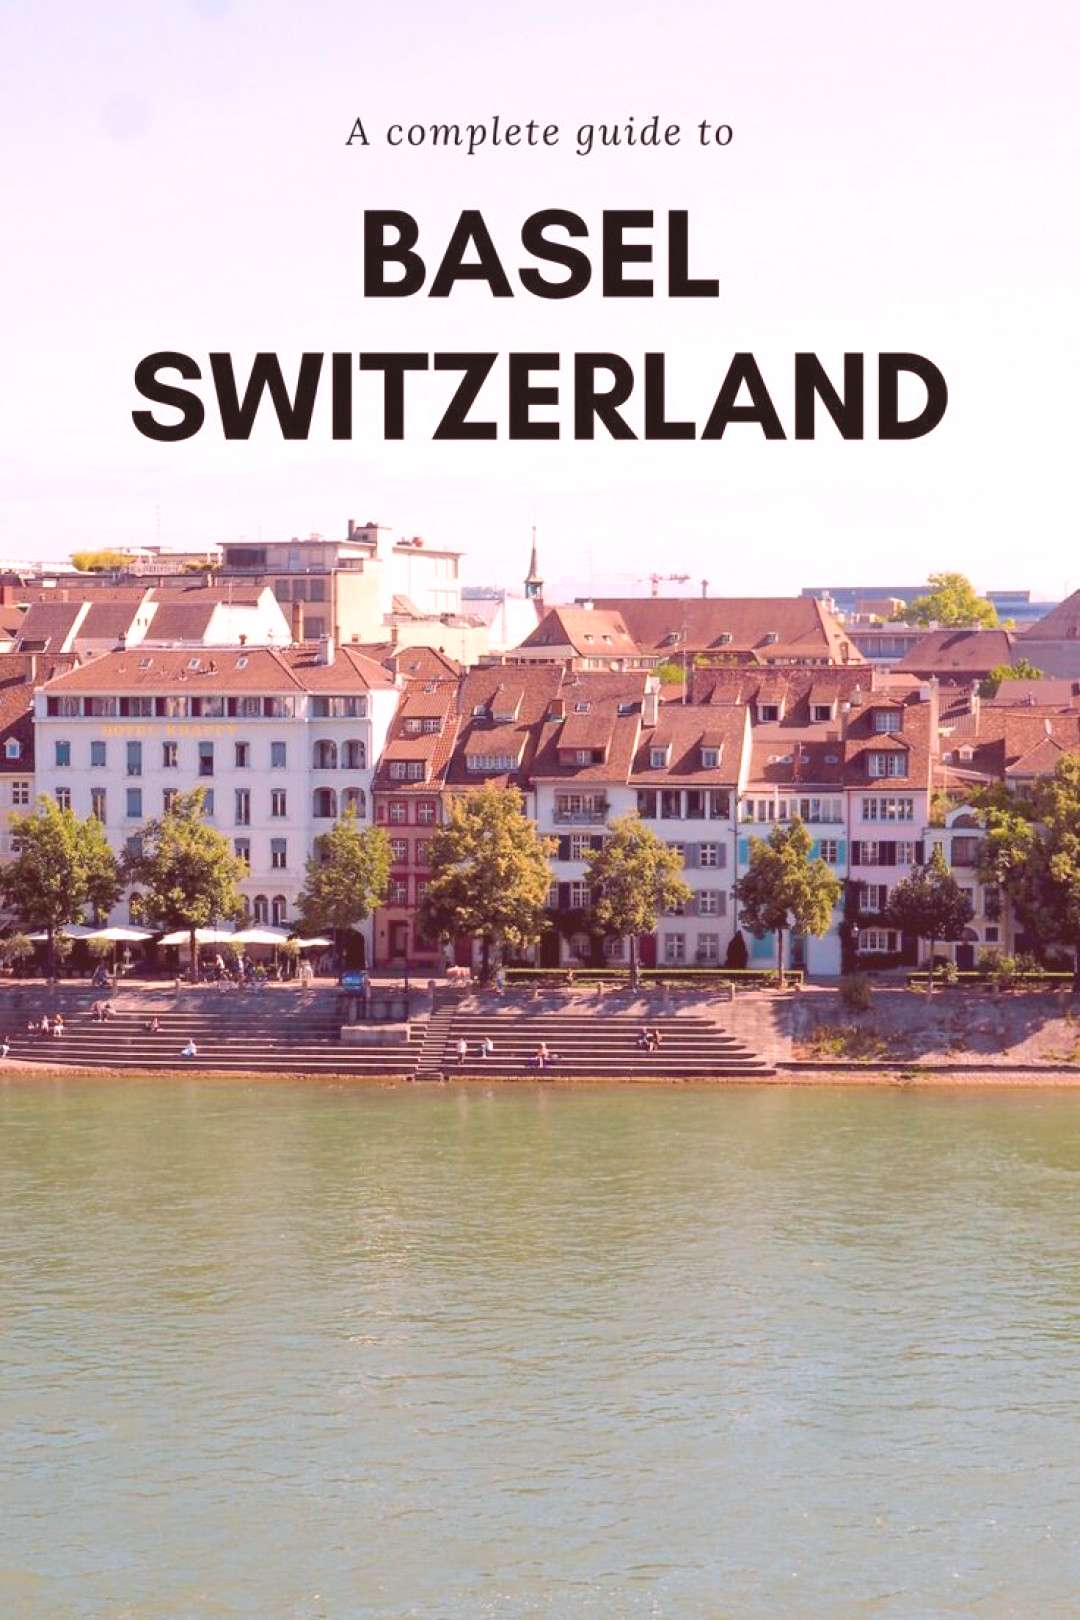 15 Things To Do In Basel, Switzerland & Best Day Trips - While Im Young A complete guide to visiti